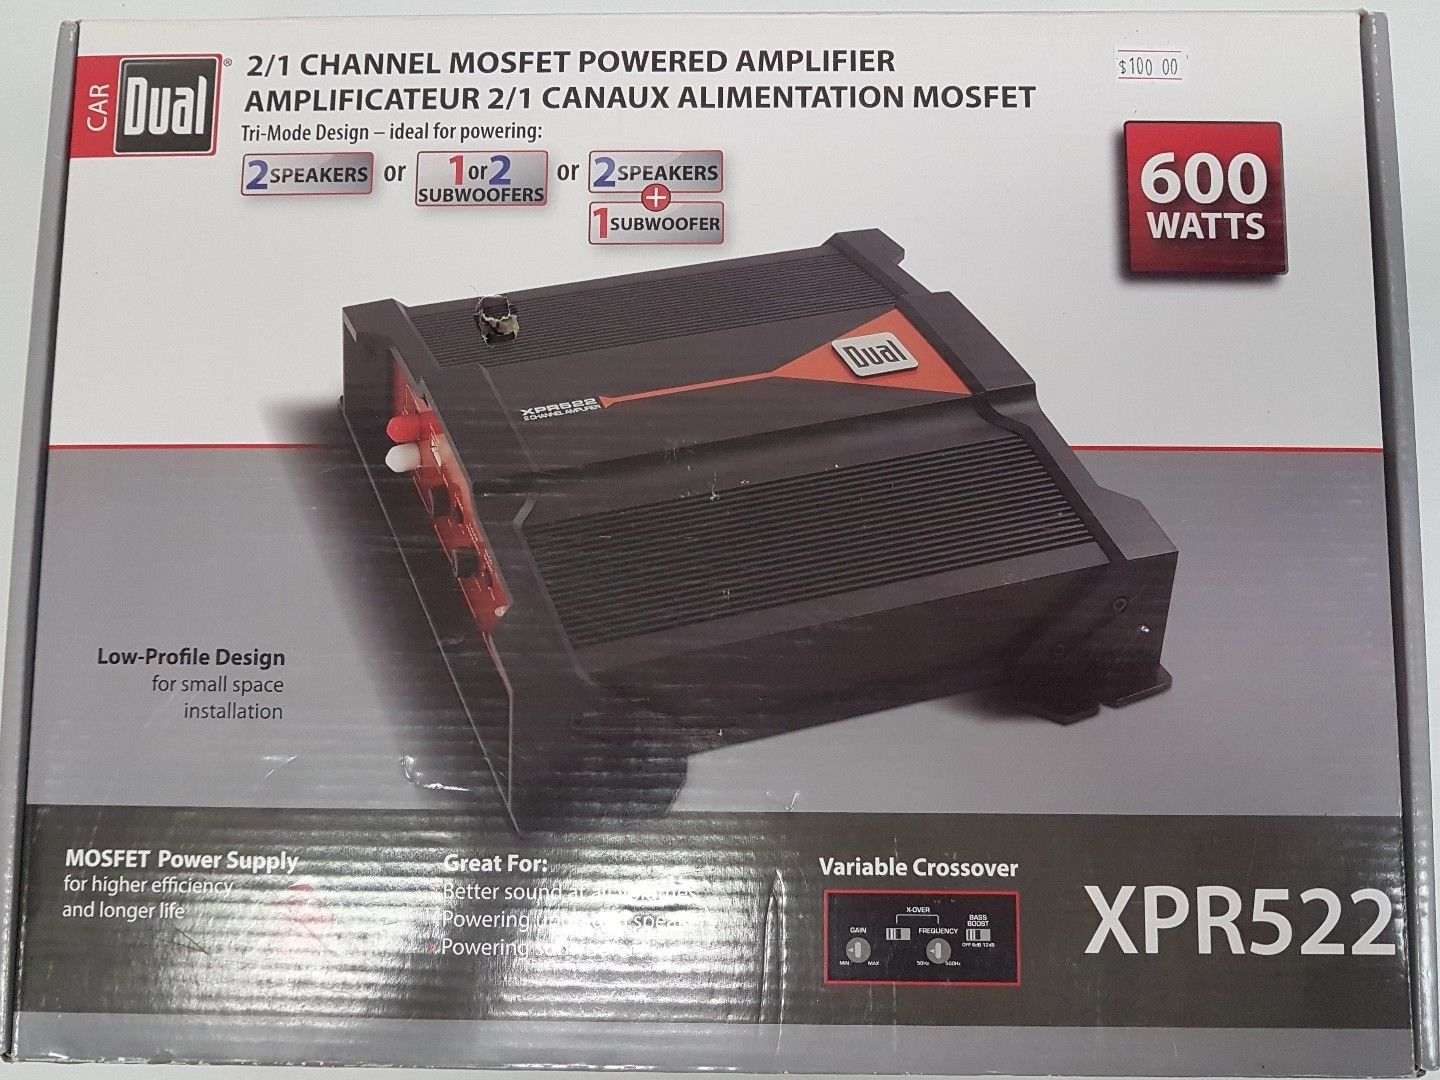 Dual XPR522 2/1 channel MOSFET Powered Amplifier - Resale Shop Canada